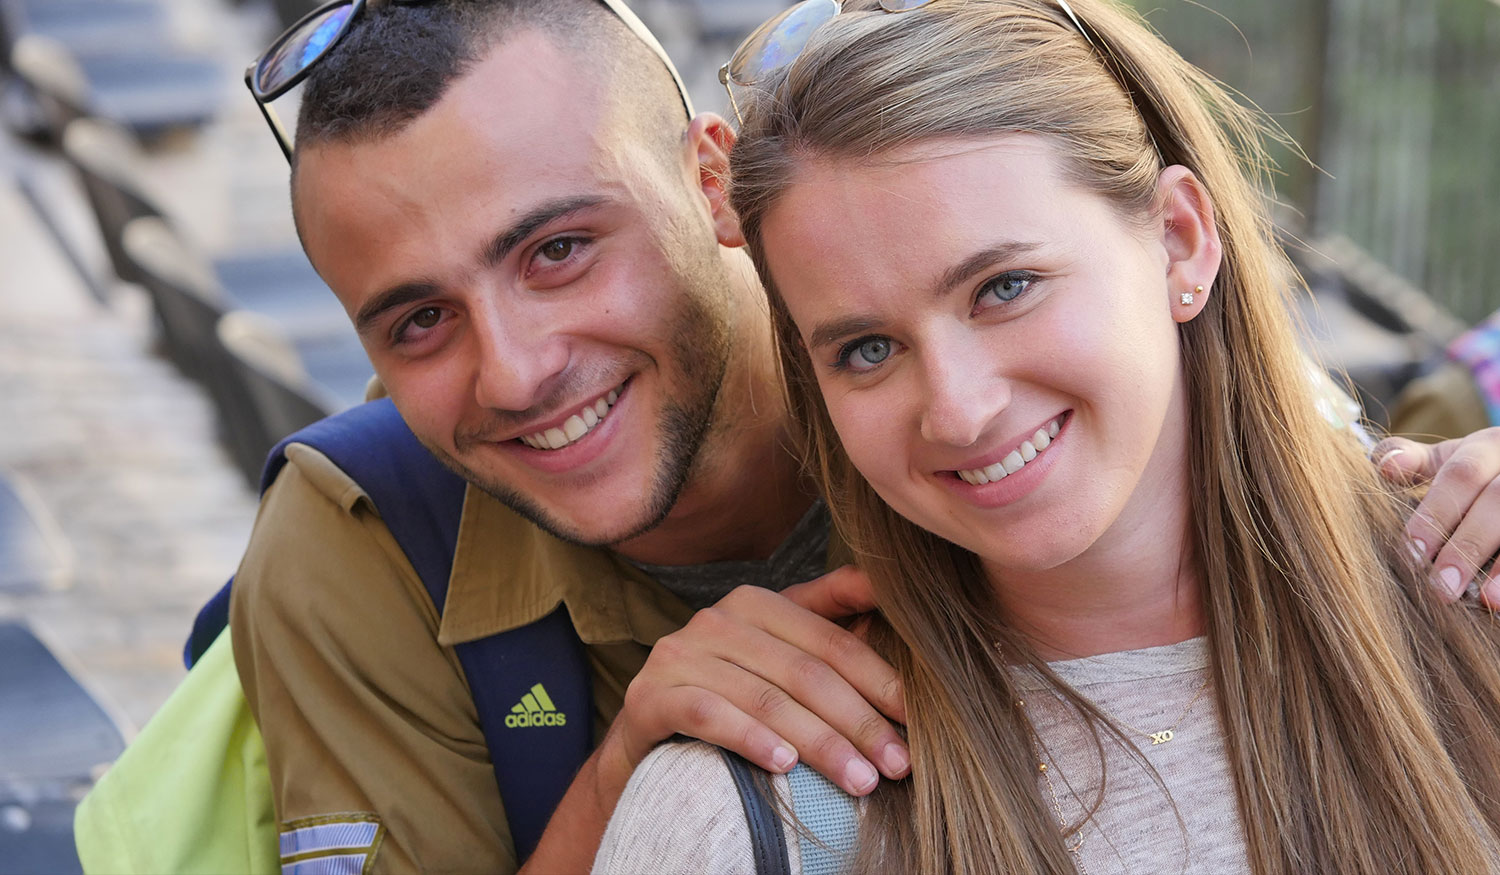 Soldier and Female